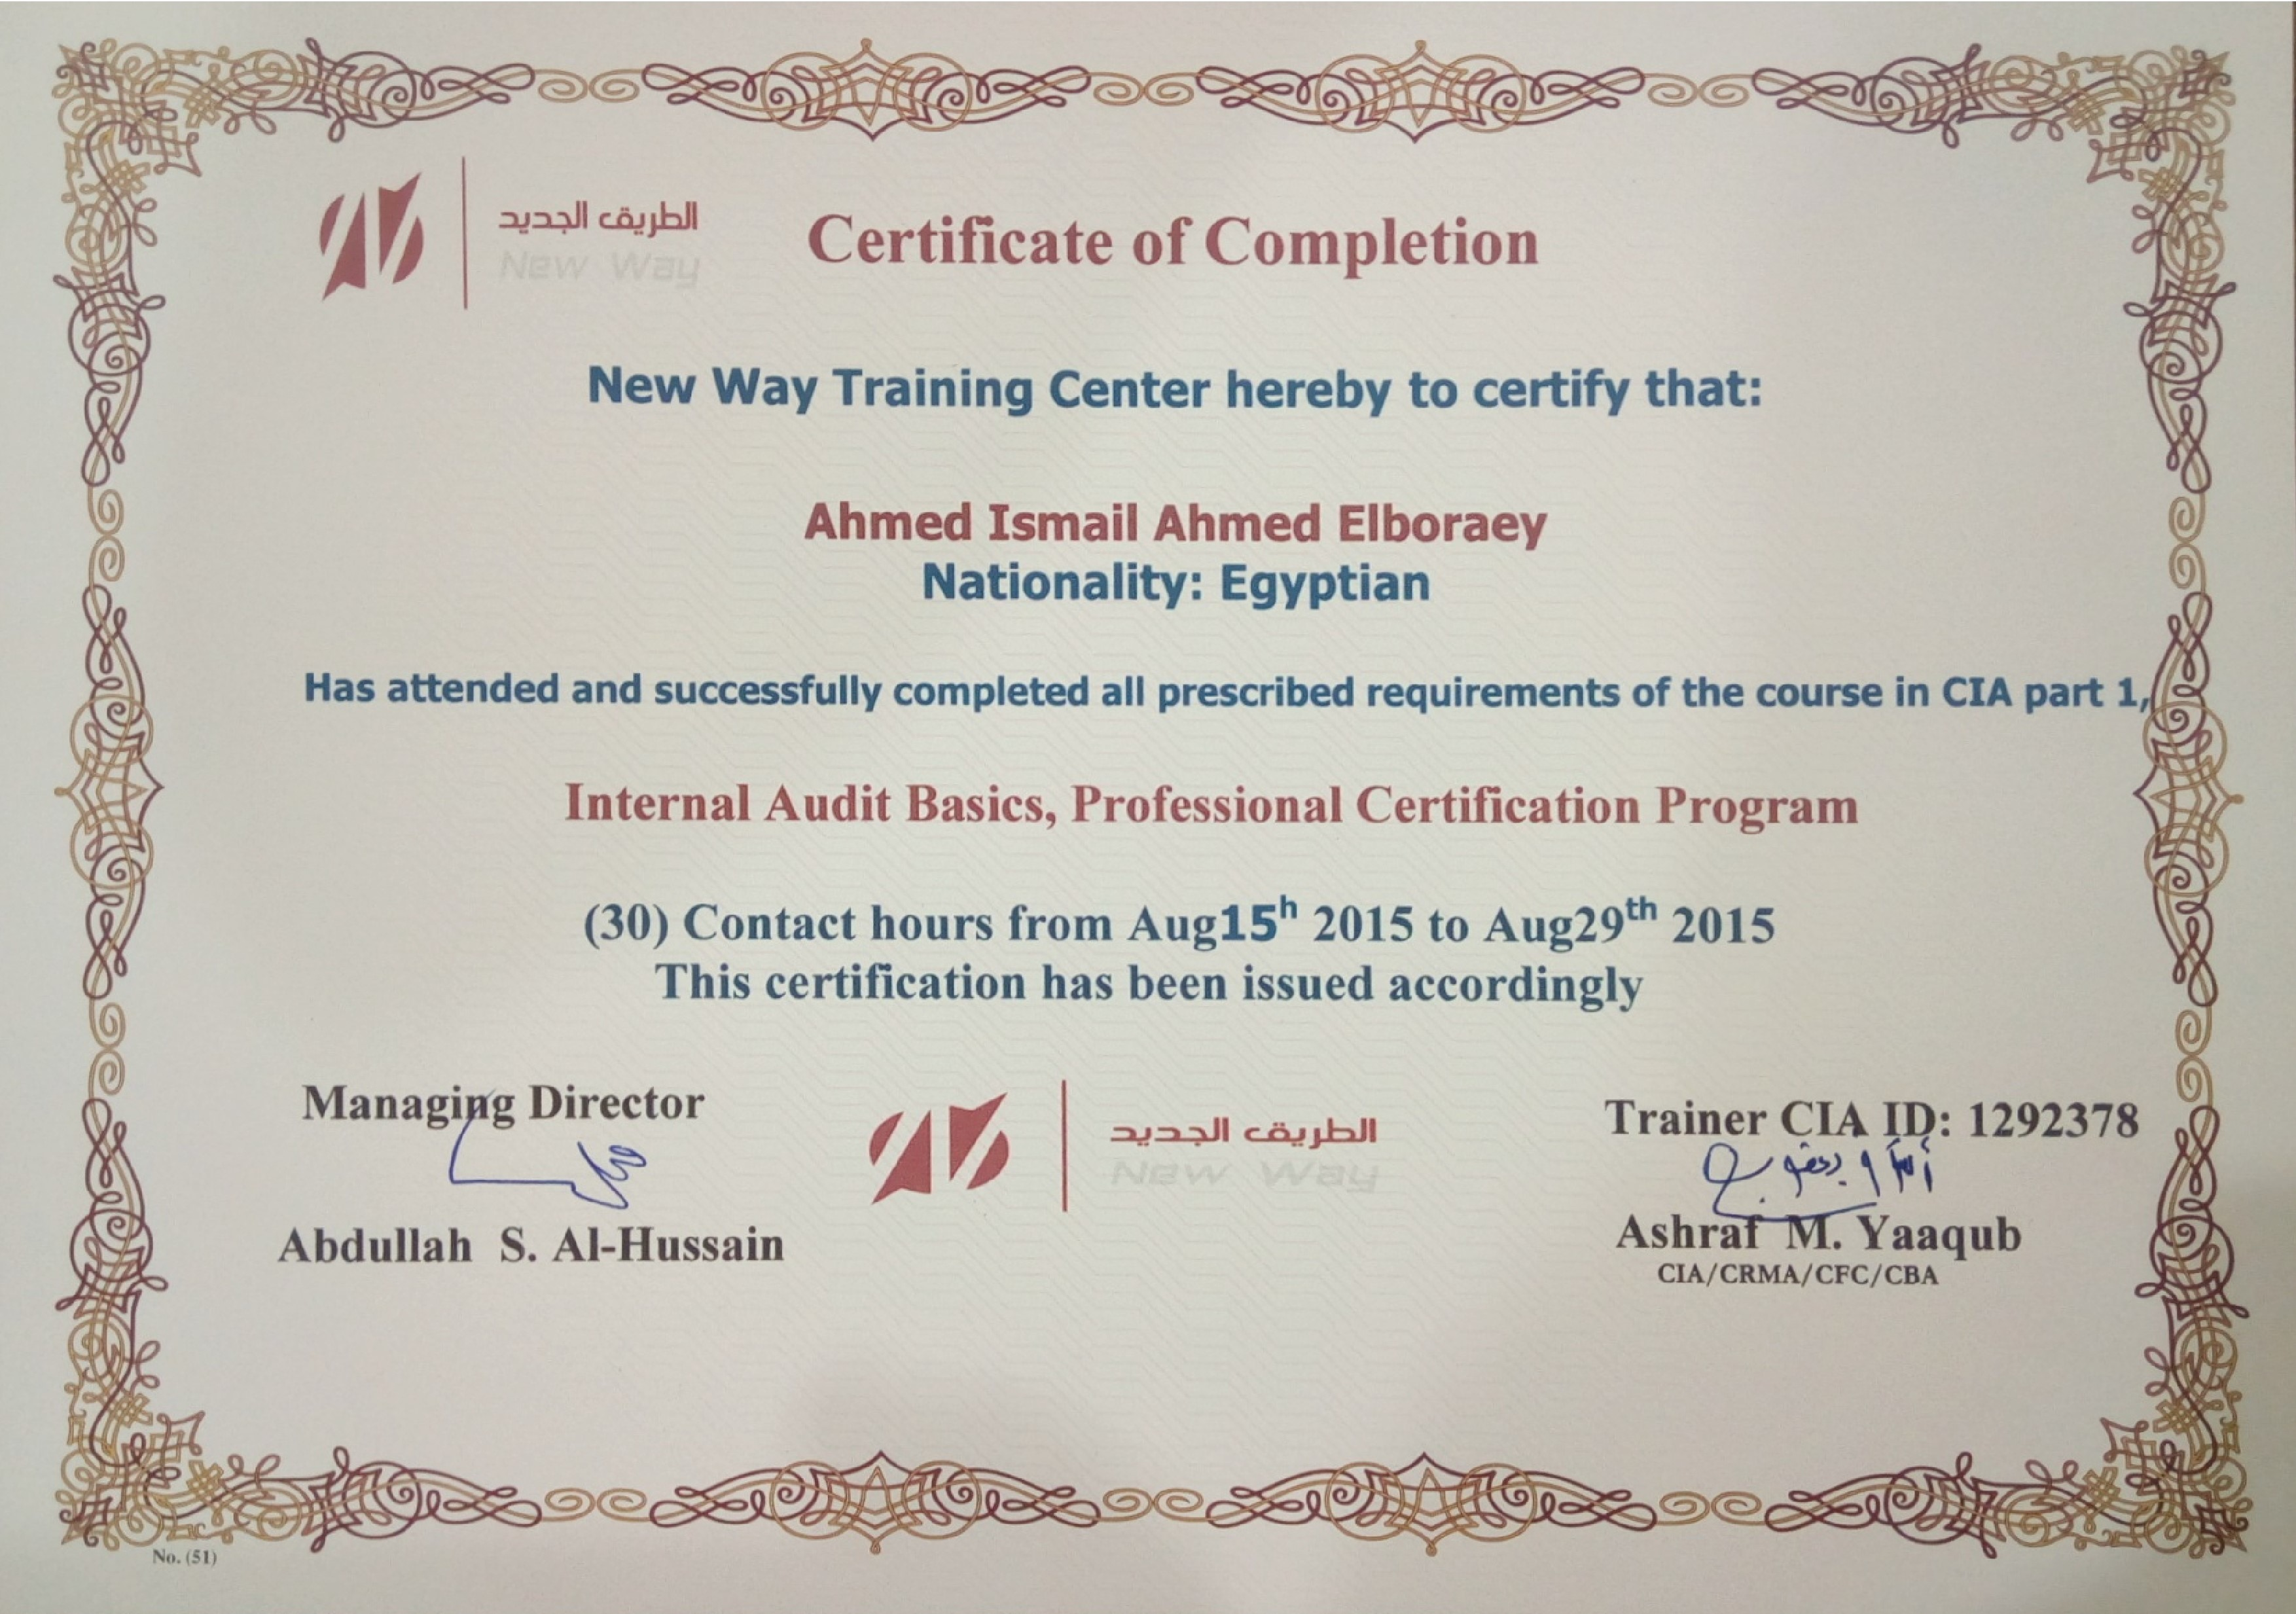 Ahmed Ismail Cfc Cfm Cm Certifr Cat Dipsfm Cia Candidate